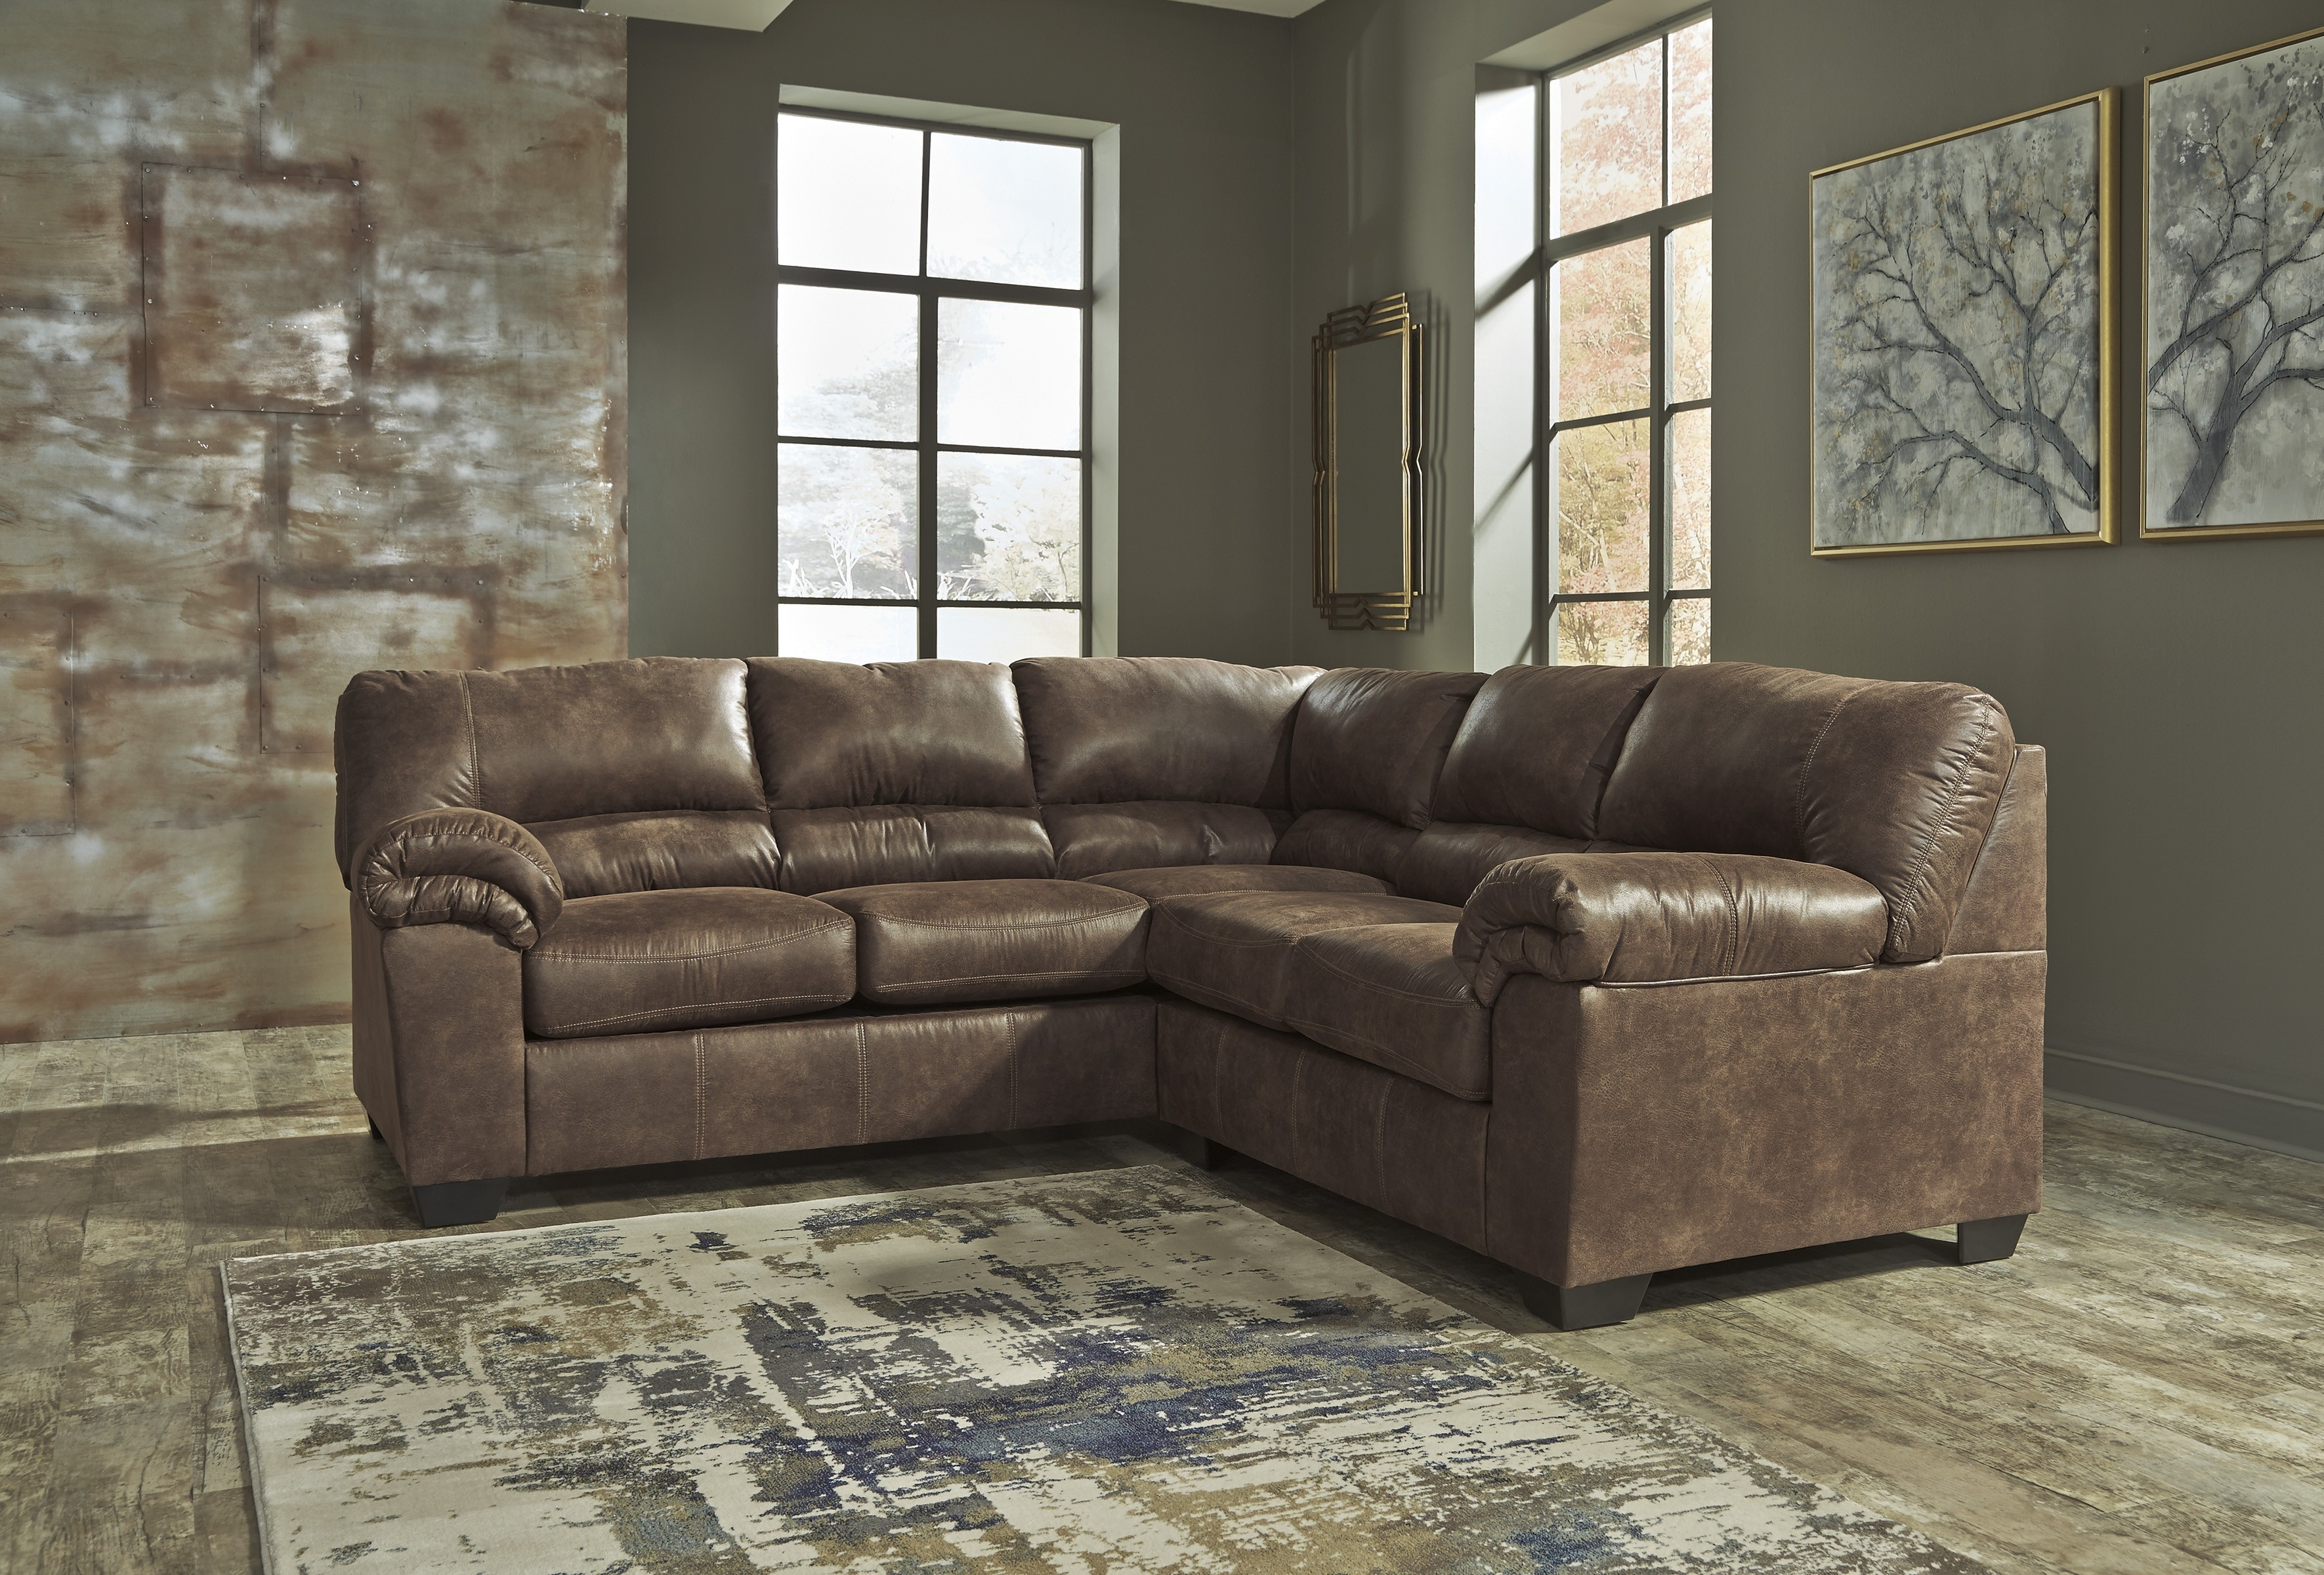 Laf Sofa Raf Loveseat | Baci Living Room In Turdur 3 Piece Sectionals With Raf Loveseat (Image 11 of 25)